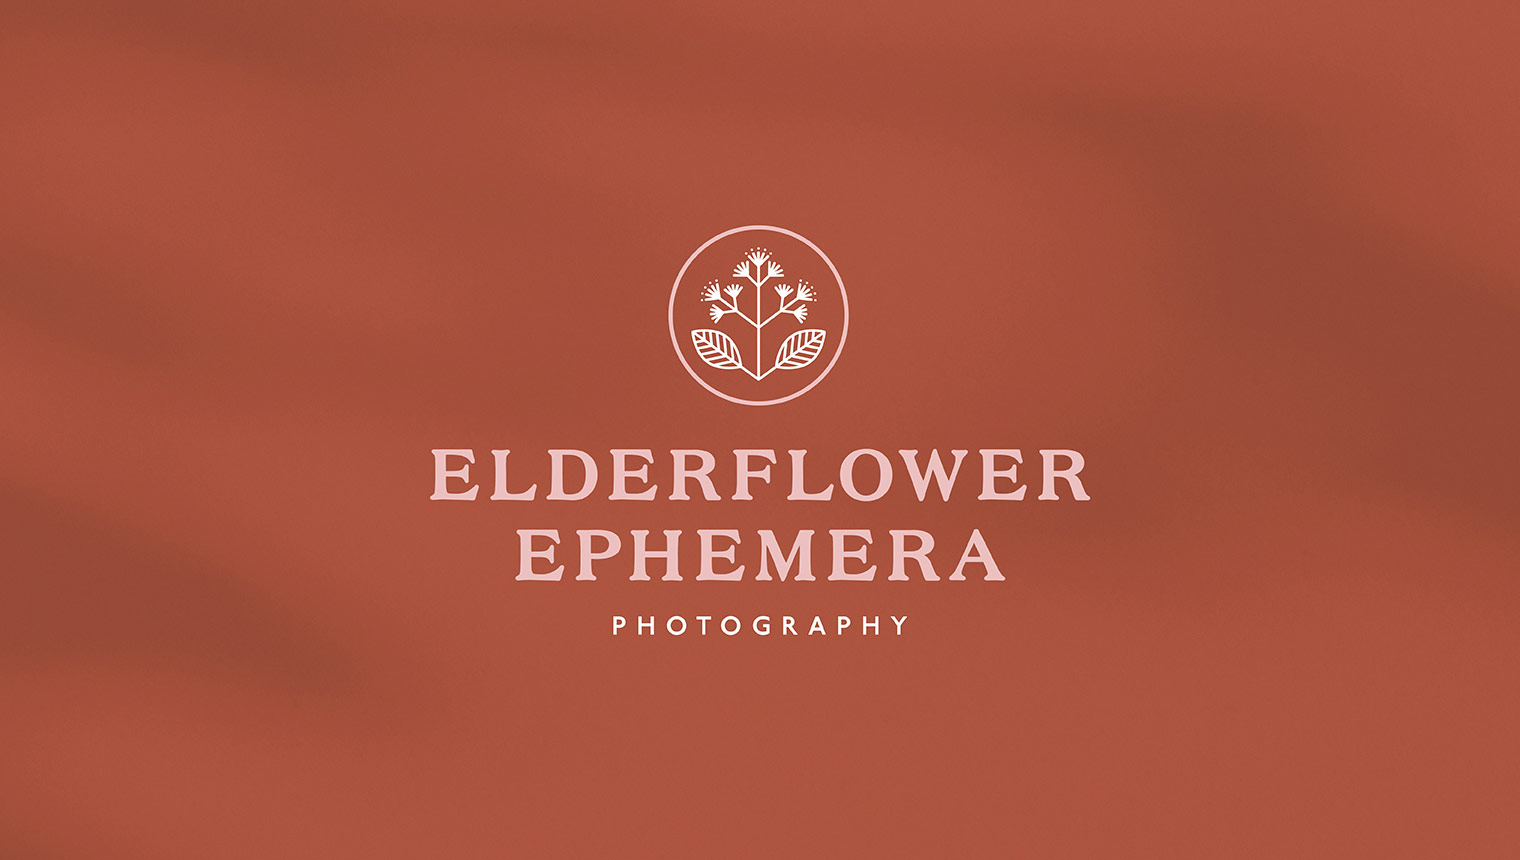 Vintage inspired logotype featuring floral emblem for film photographer elderflower ephemera